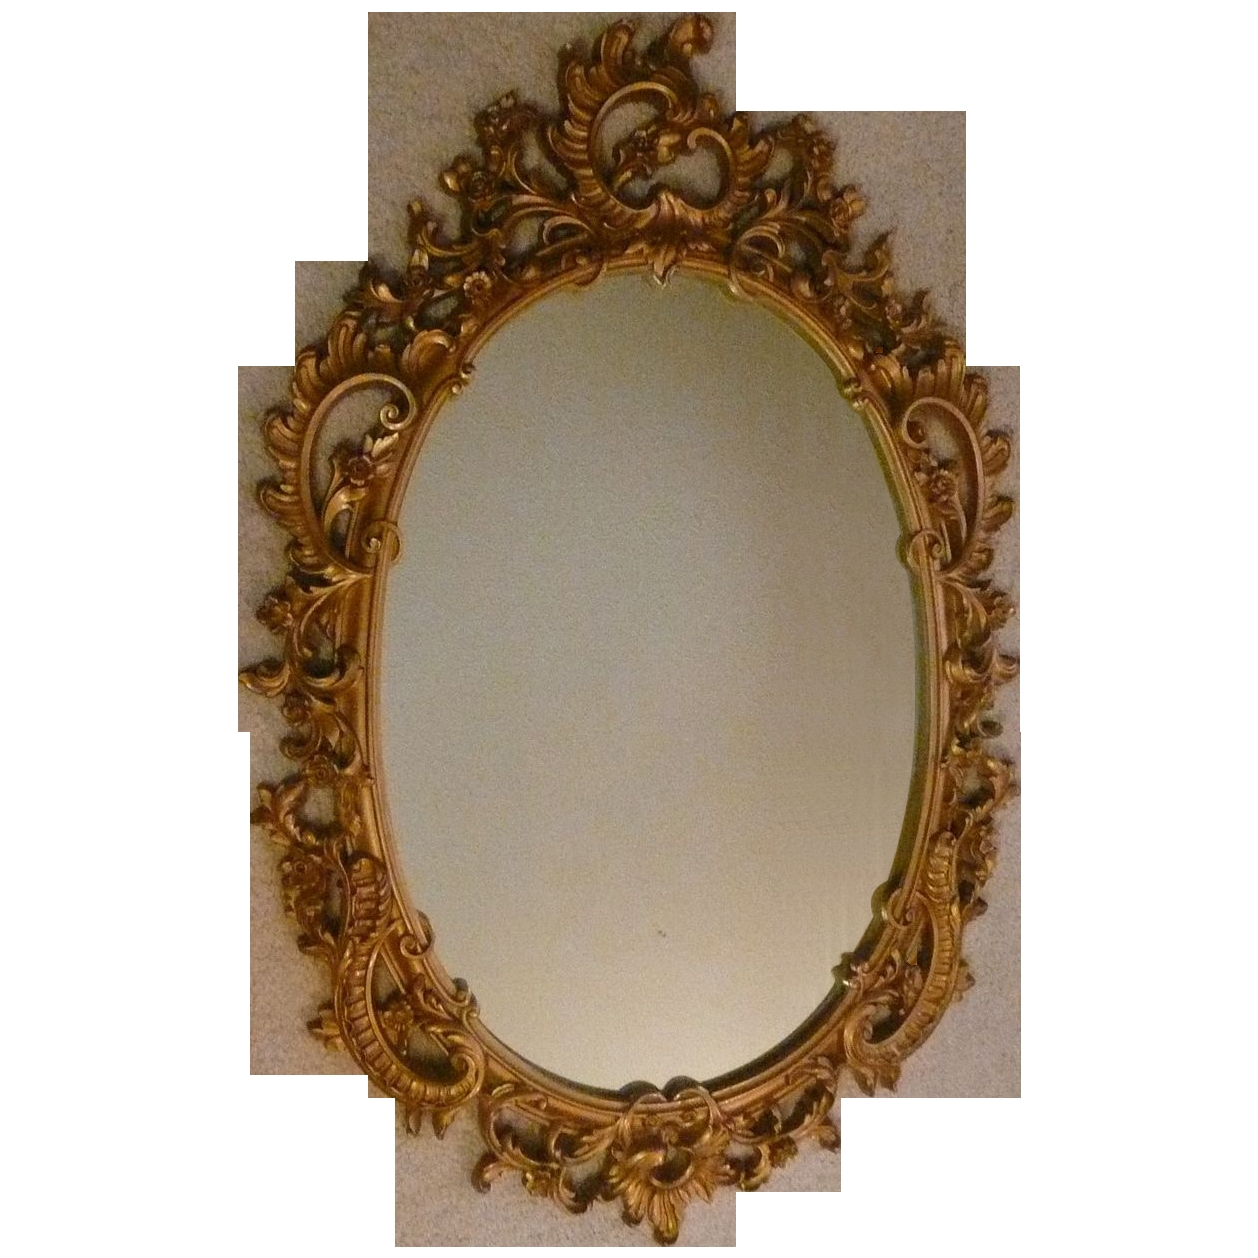 Syroco Wood Composite Mirror With Ornate Scroll From Artgate On Inside Mirror Ornate (Image 10 of 15)